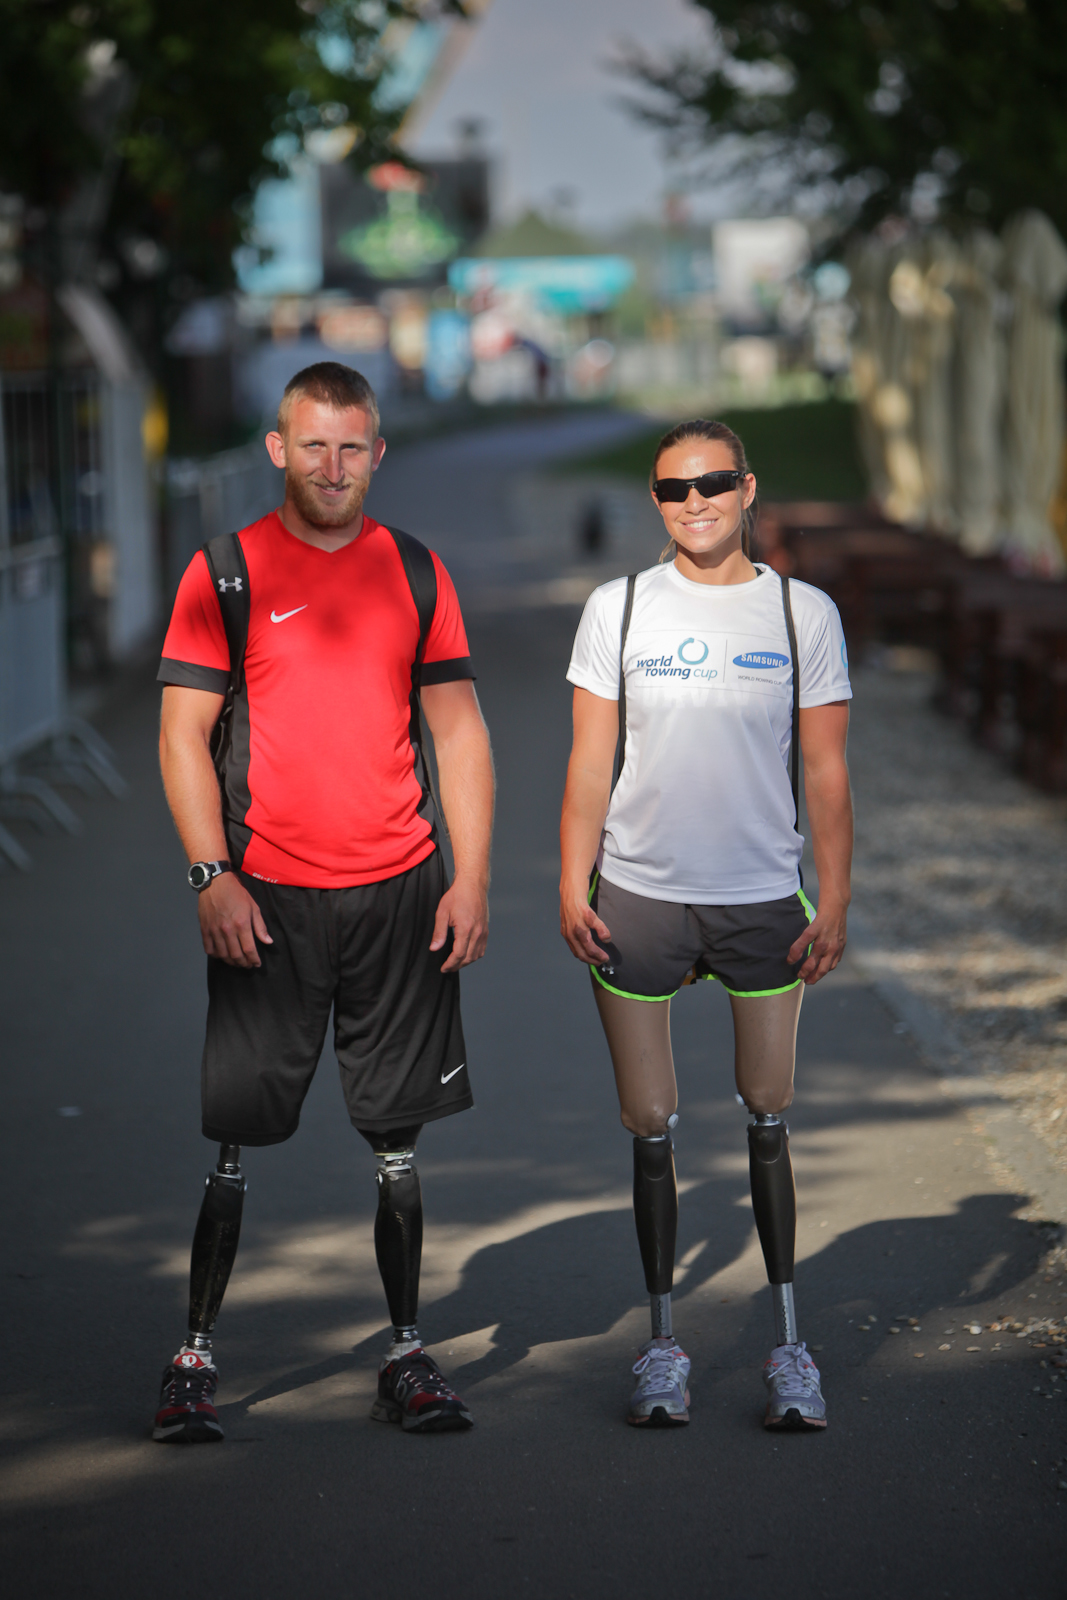 Paralympians Oksana Masters (right) and Rob Jones (left). (Photo by Vladimir Krzalic - Vladimir Krzalic, CC BY-SA 3.0.)